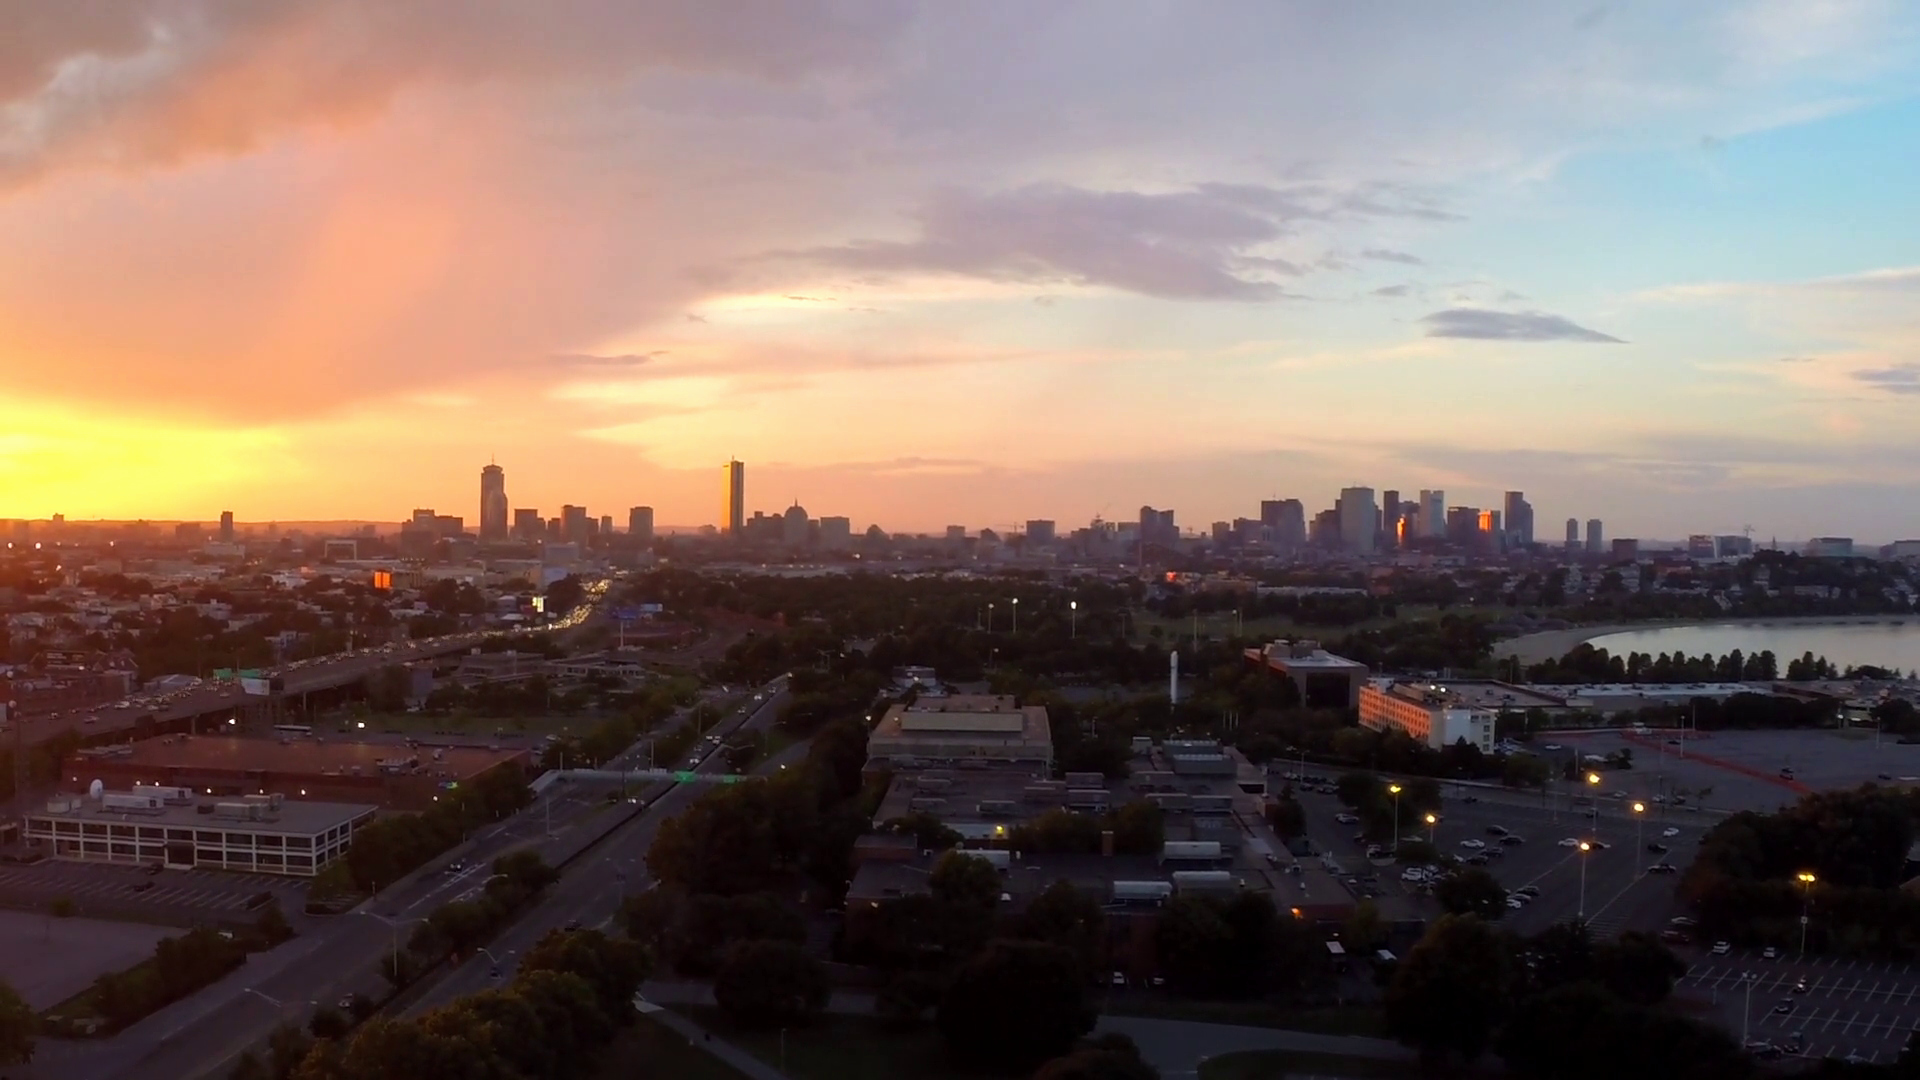 Phantom Stock Agreement Template Lovely Stationary Aerial View Boston Skyline with Sunset Fast